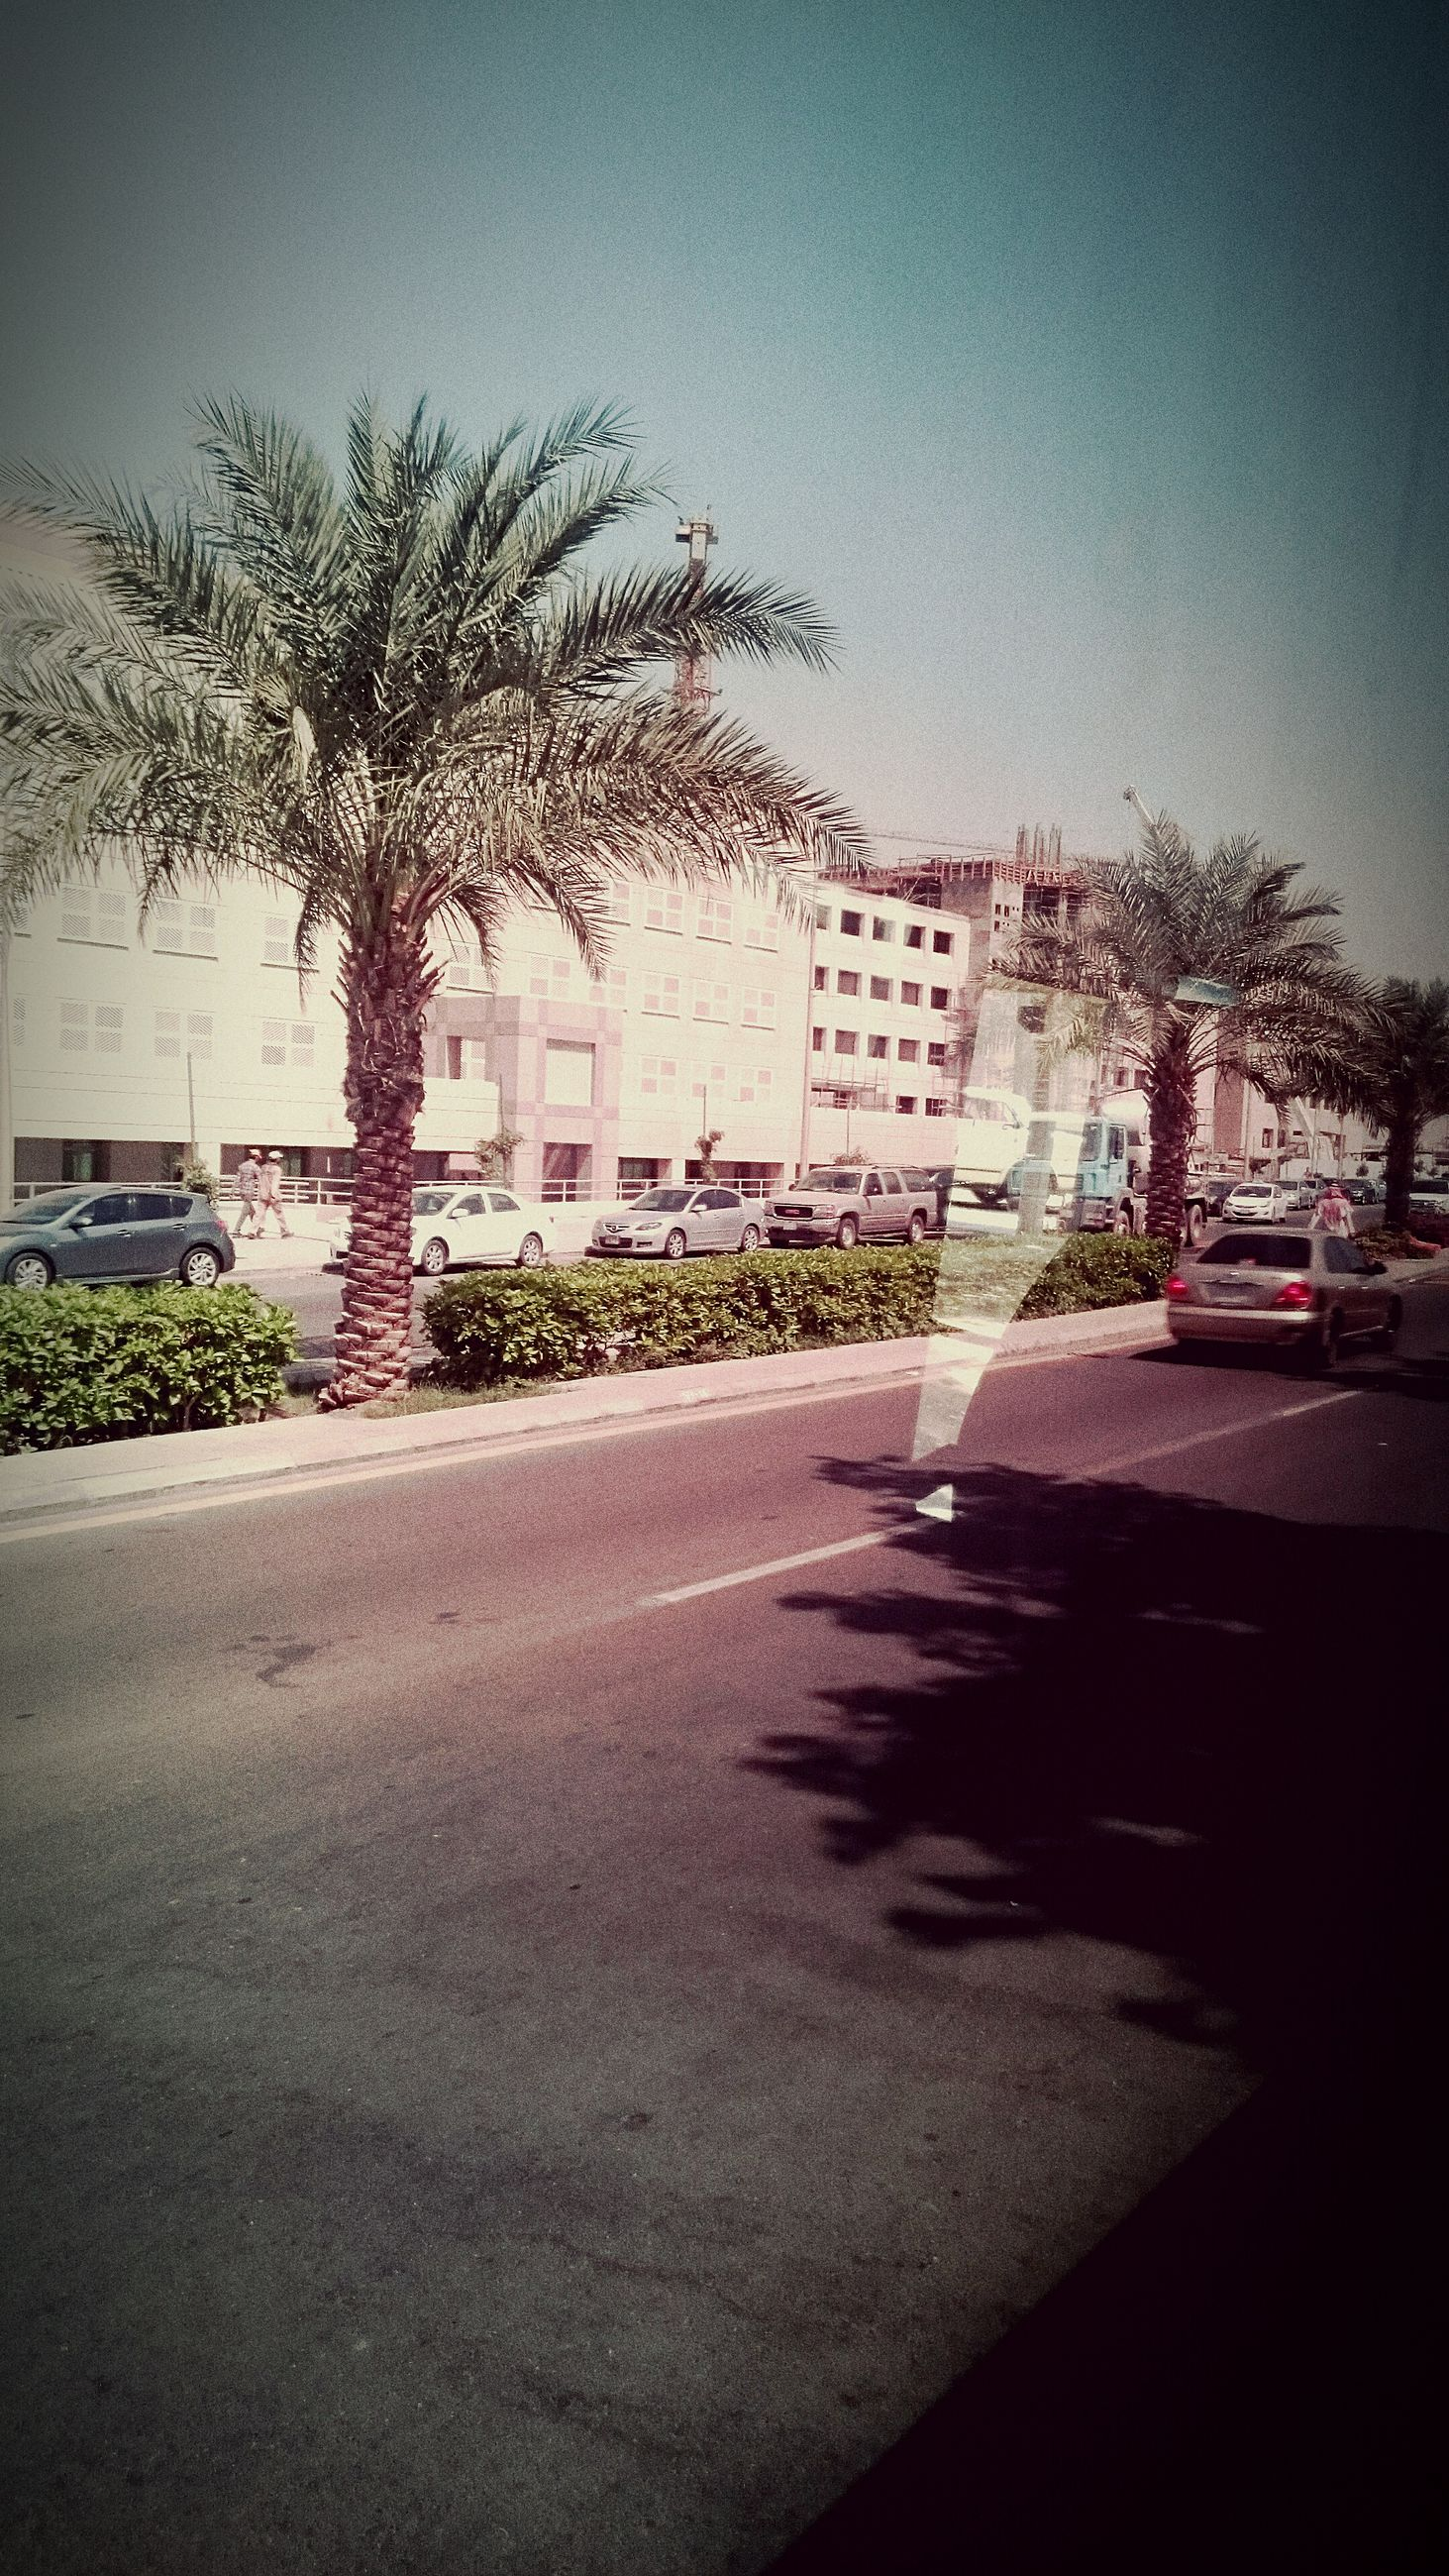 building exterior, architecture, built structure, tree, city, street, road, car, transportation, clear sky, building, residential structure, residential building, palm tree, house, sunlight, sky, shadow, outdoors, city street